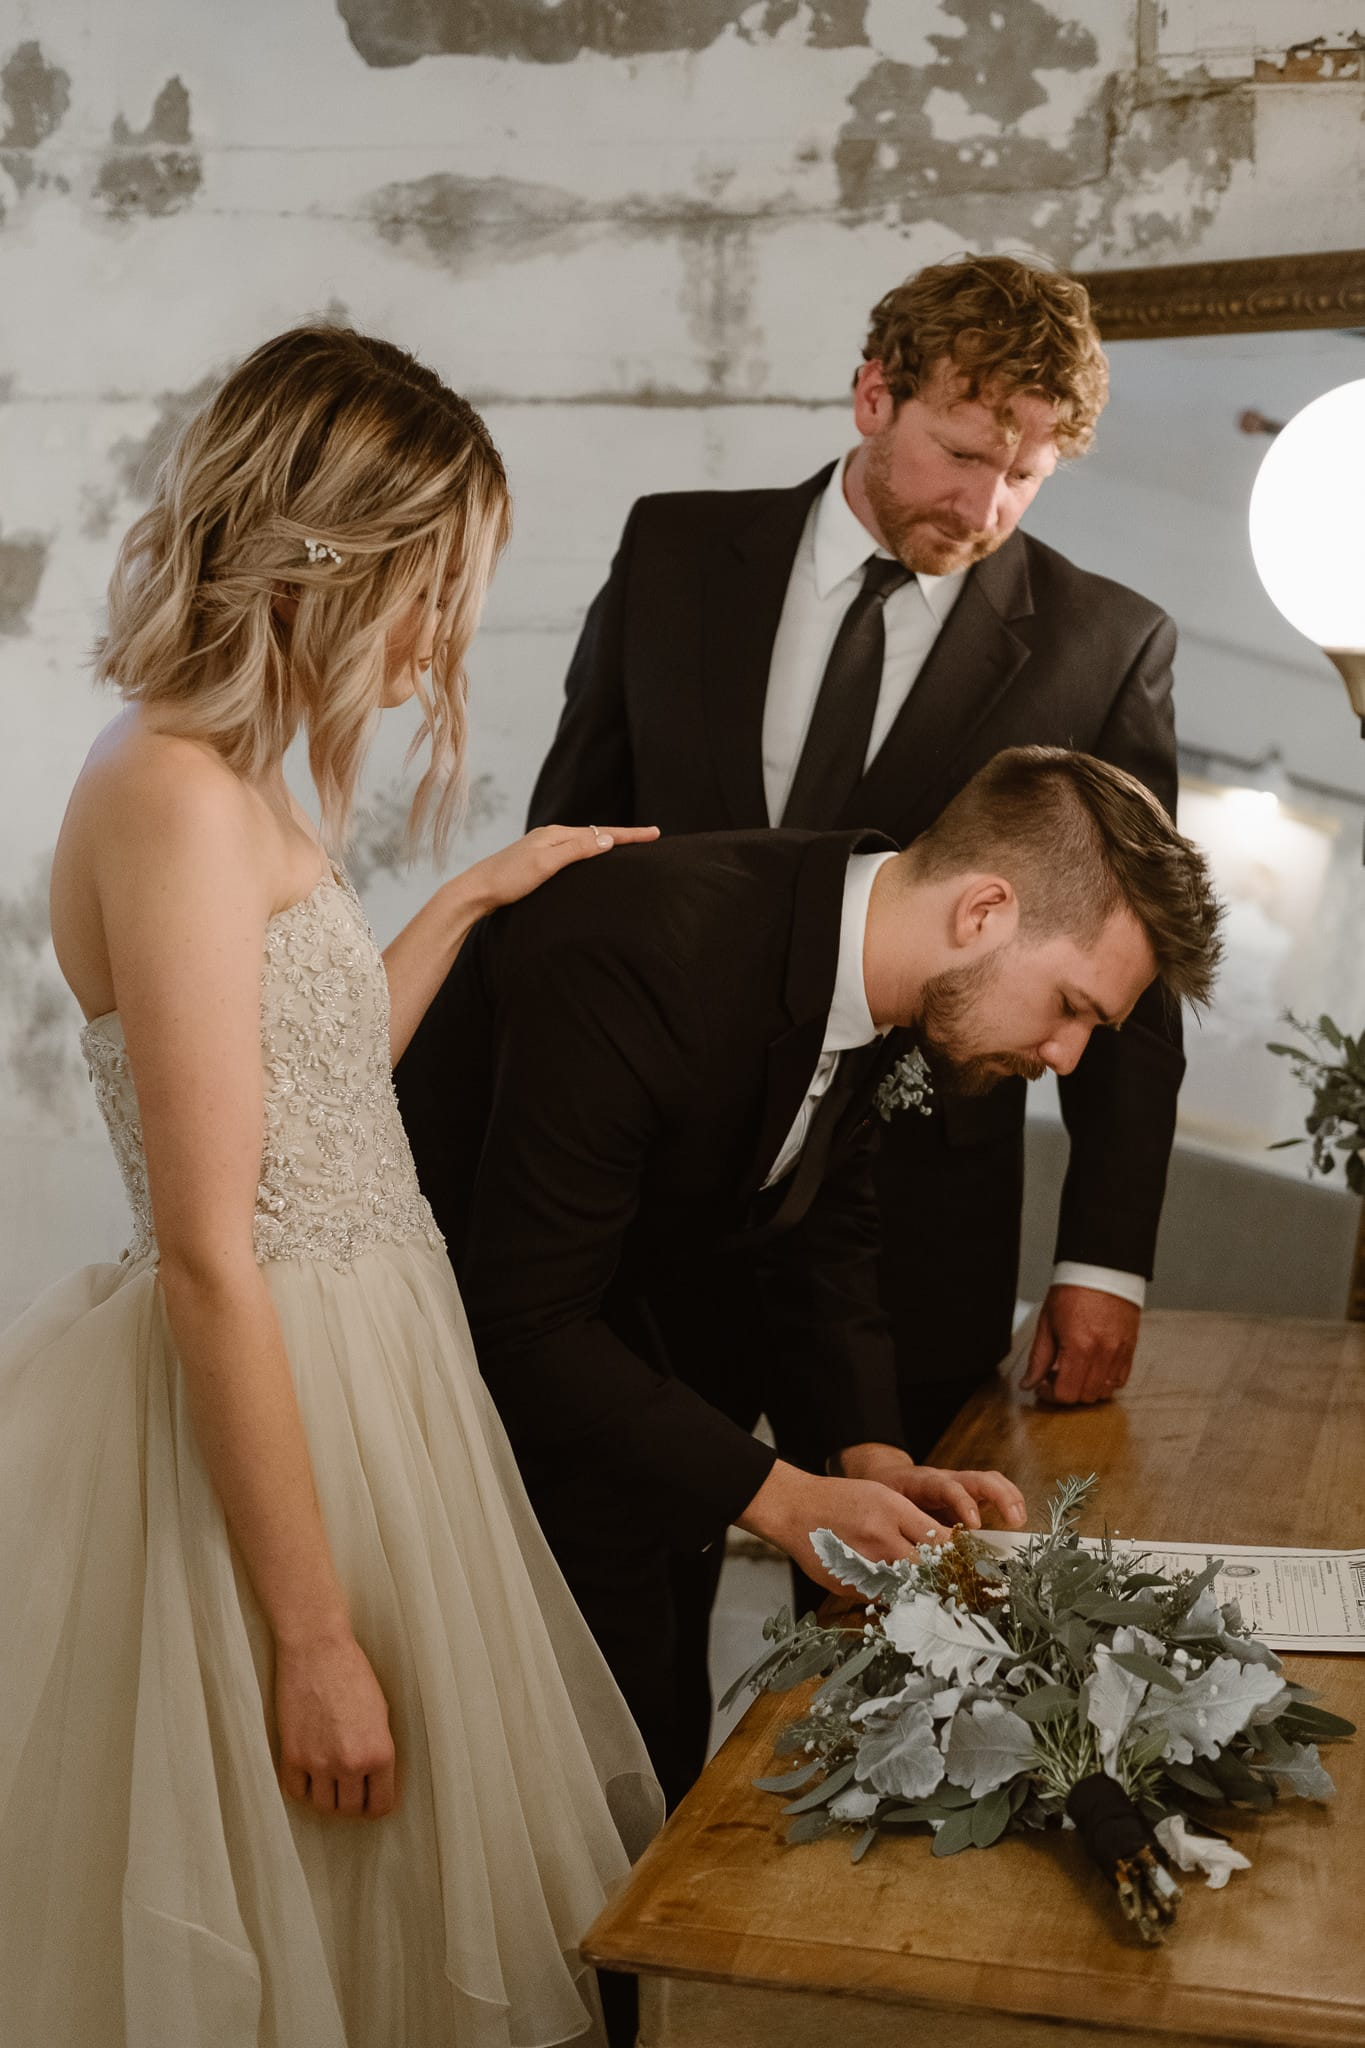 St Vrain Wedding Photographer | Longmont Wedding Photographer | Colorado Winter Wedding Photographer, Colorado industrial chic wedding ceremony, bride and groom signing marriage license